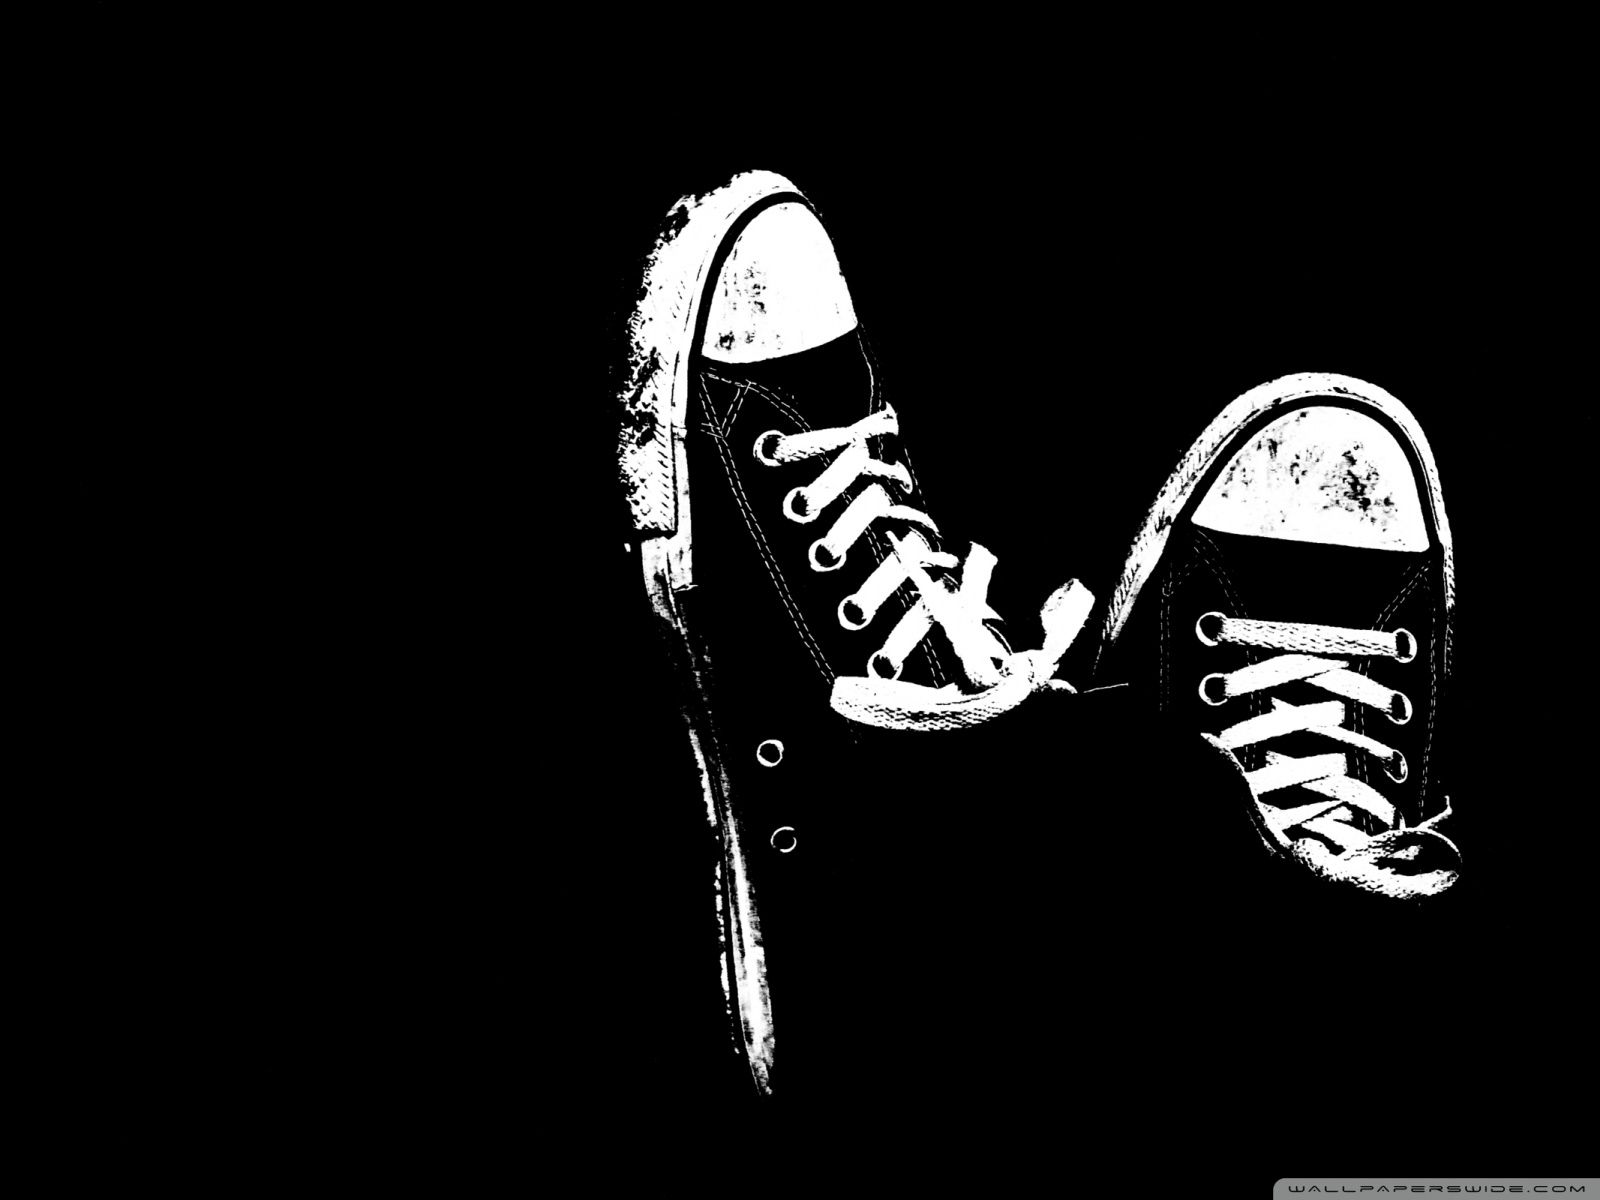 black and white shoes wallpaper hd kerlabs net hd wallpapers black